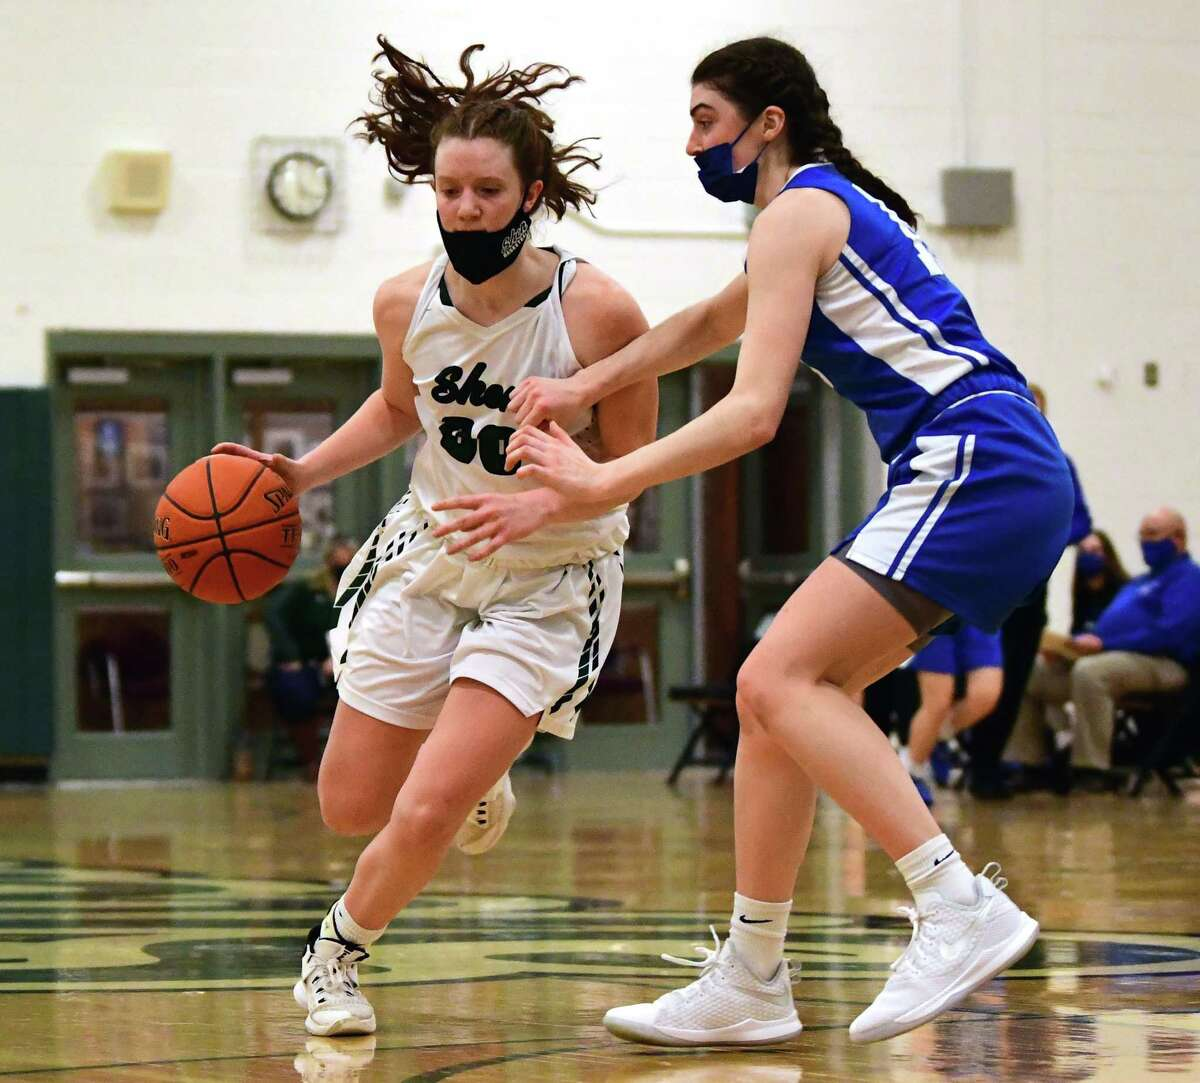 Shenendehowa's Jillian Huerter is defended by Saratoga's Nora Carminucci during a basketball game on Friday, March 12, 2021 in Clifton Park, N.Y. (Lori Van Buren/Times Union)